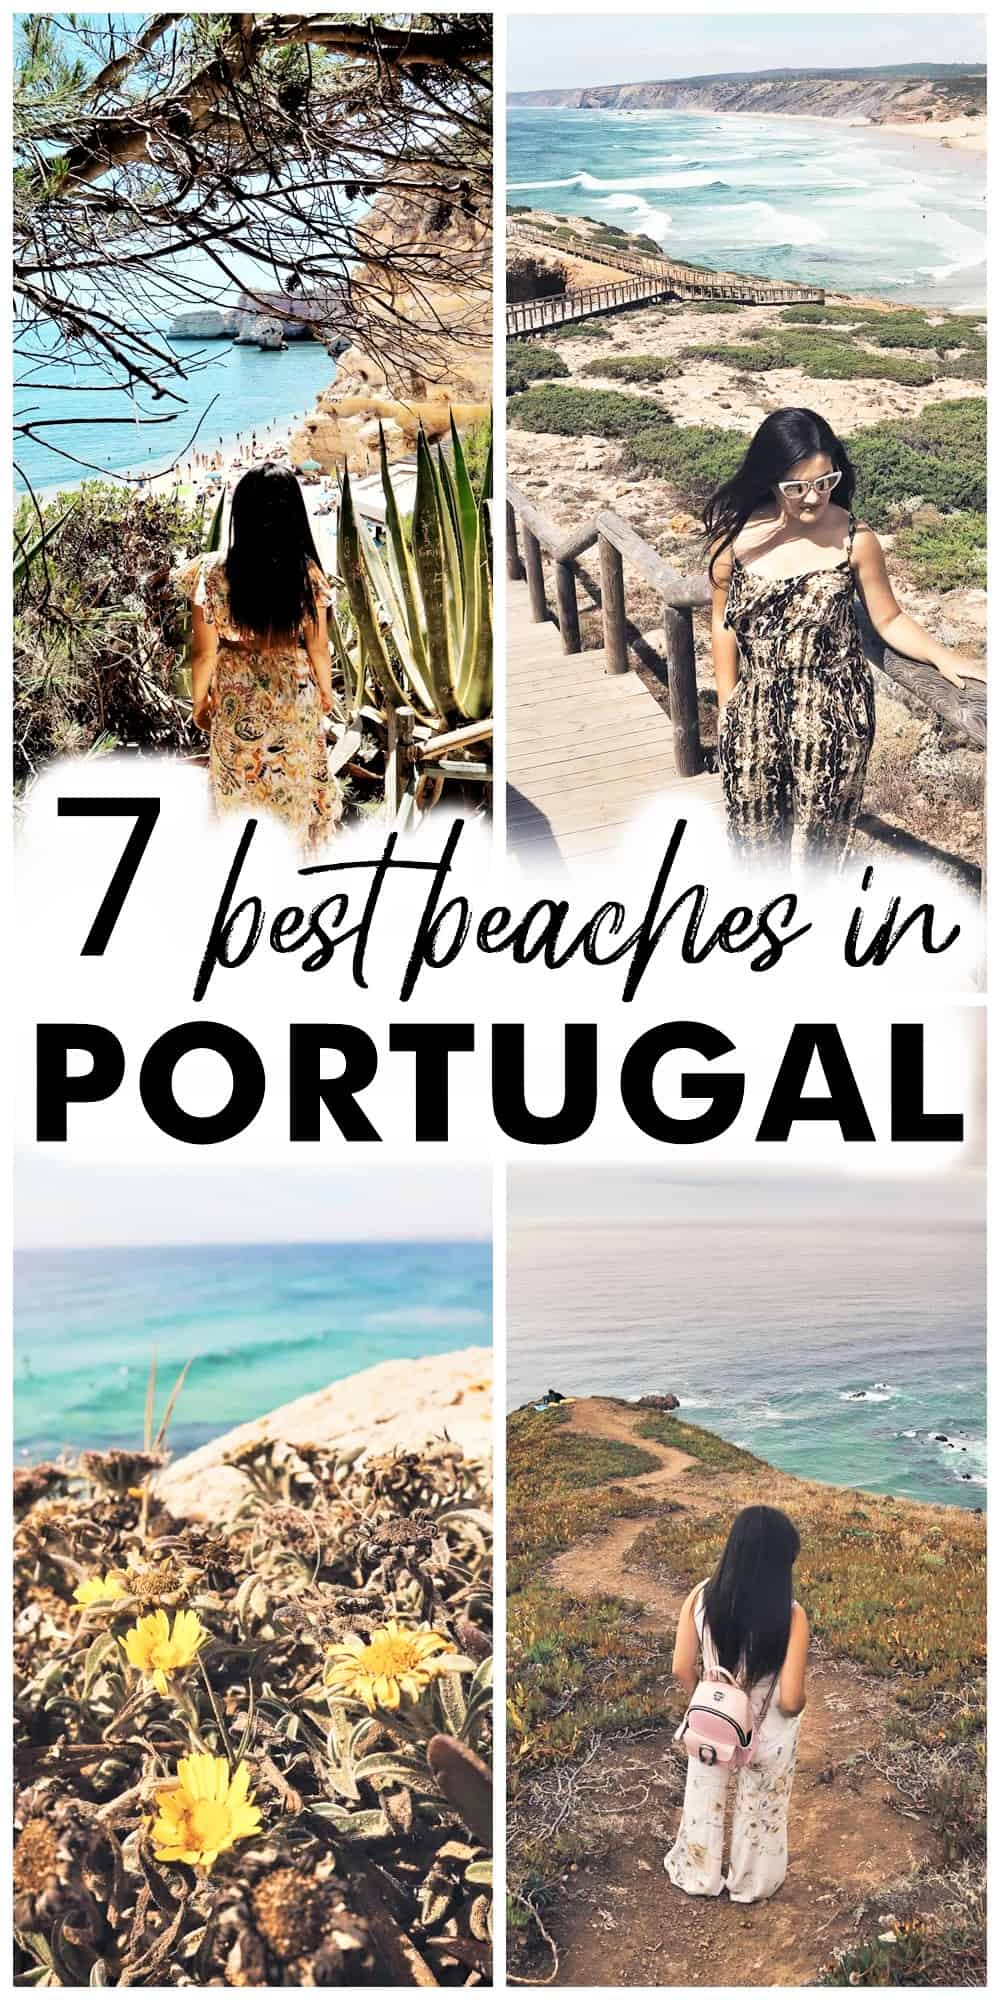 7 best beaches in Portugal